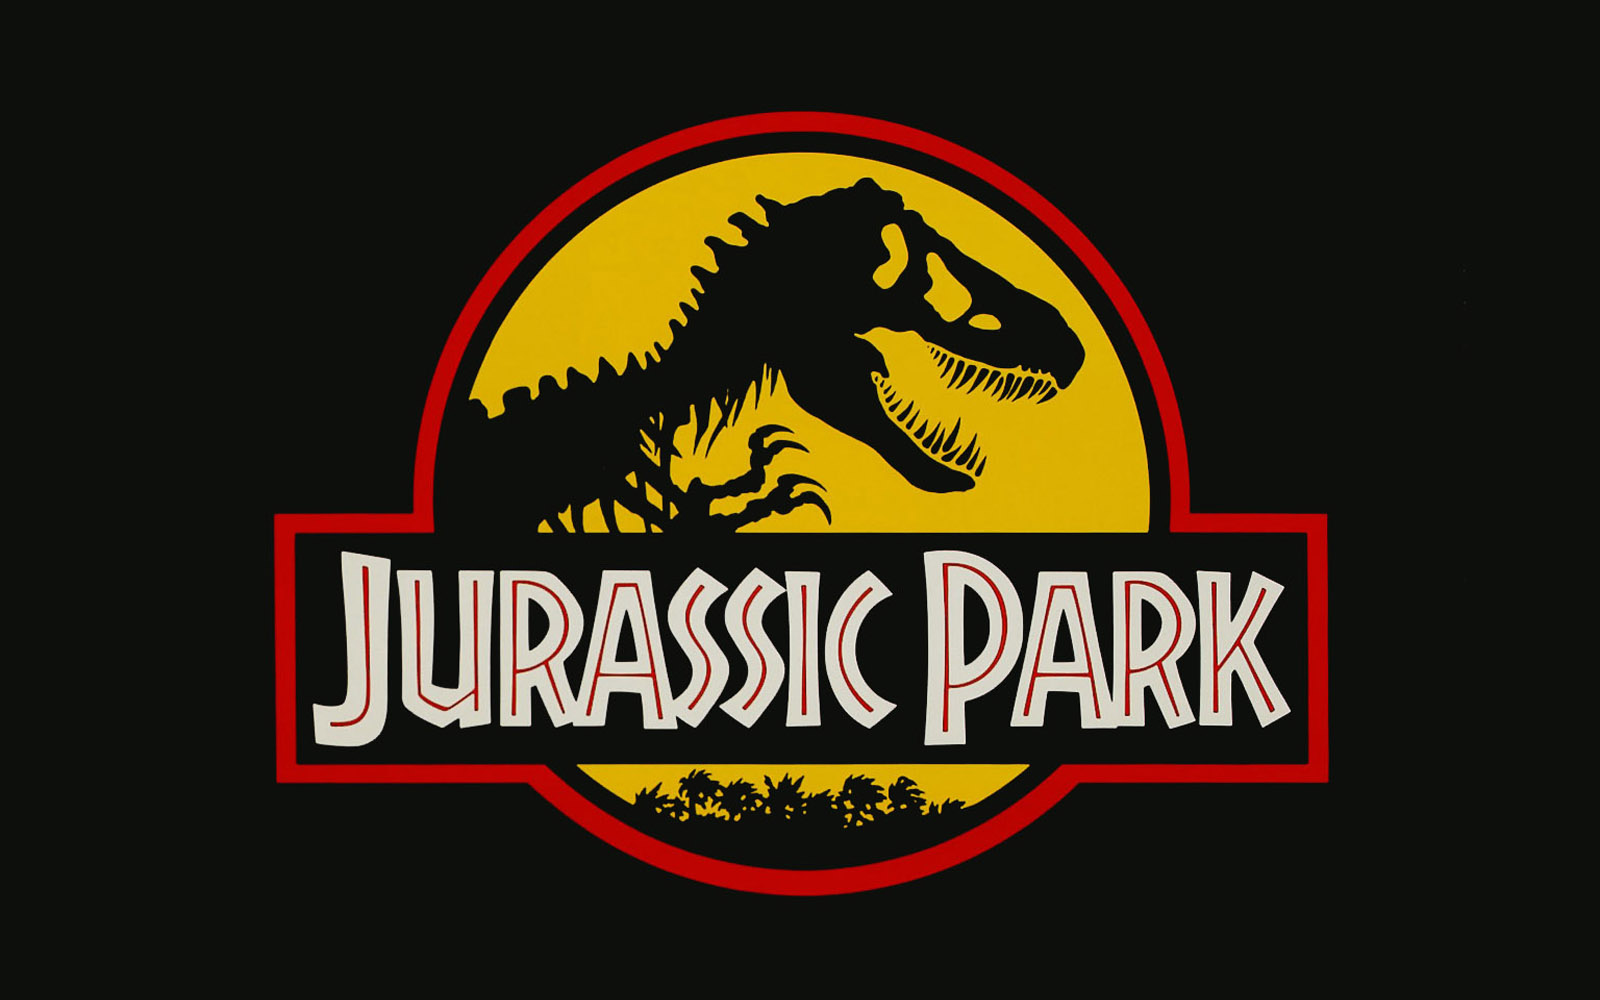 Jurassic Park | Euro Palace Casino Blog - Part 2